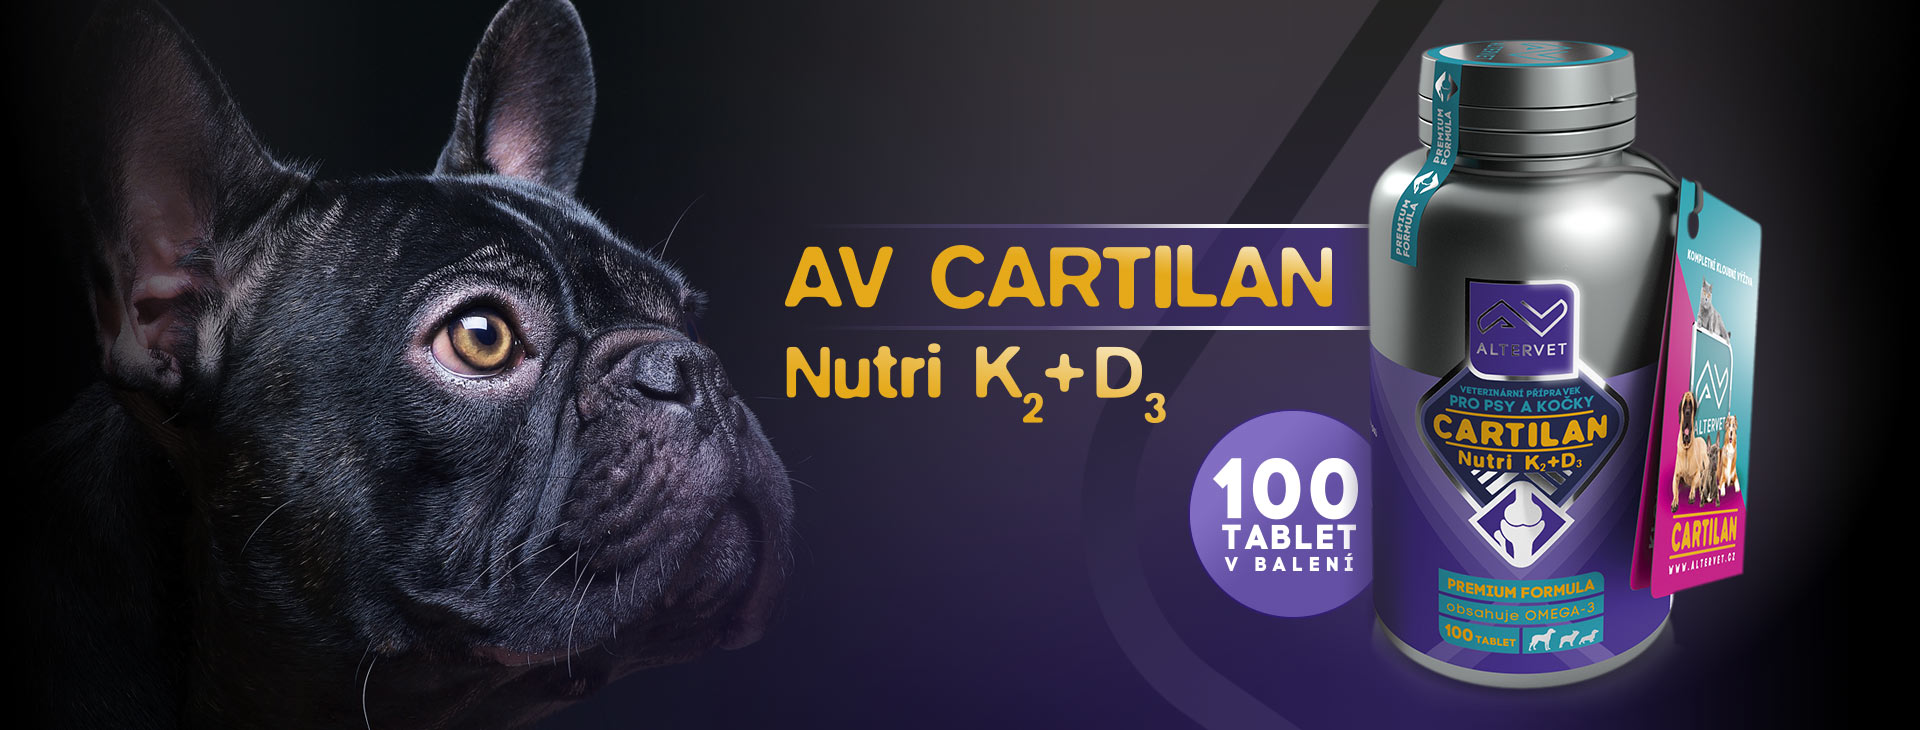 CARTILAN Nutri